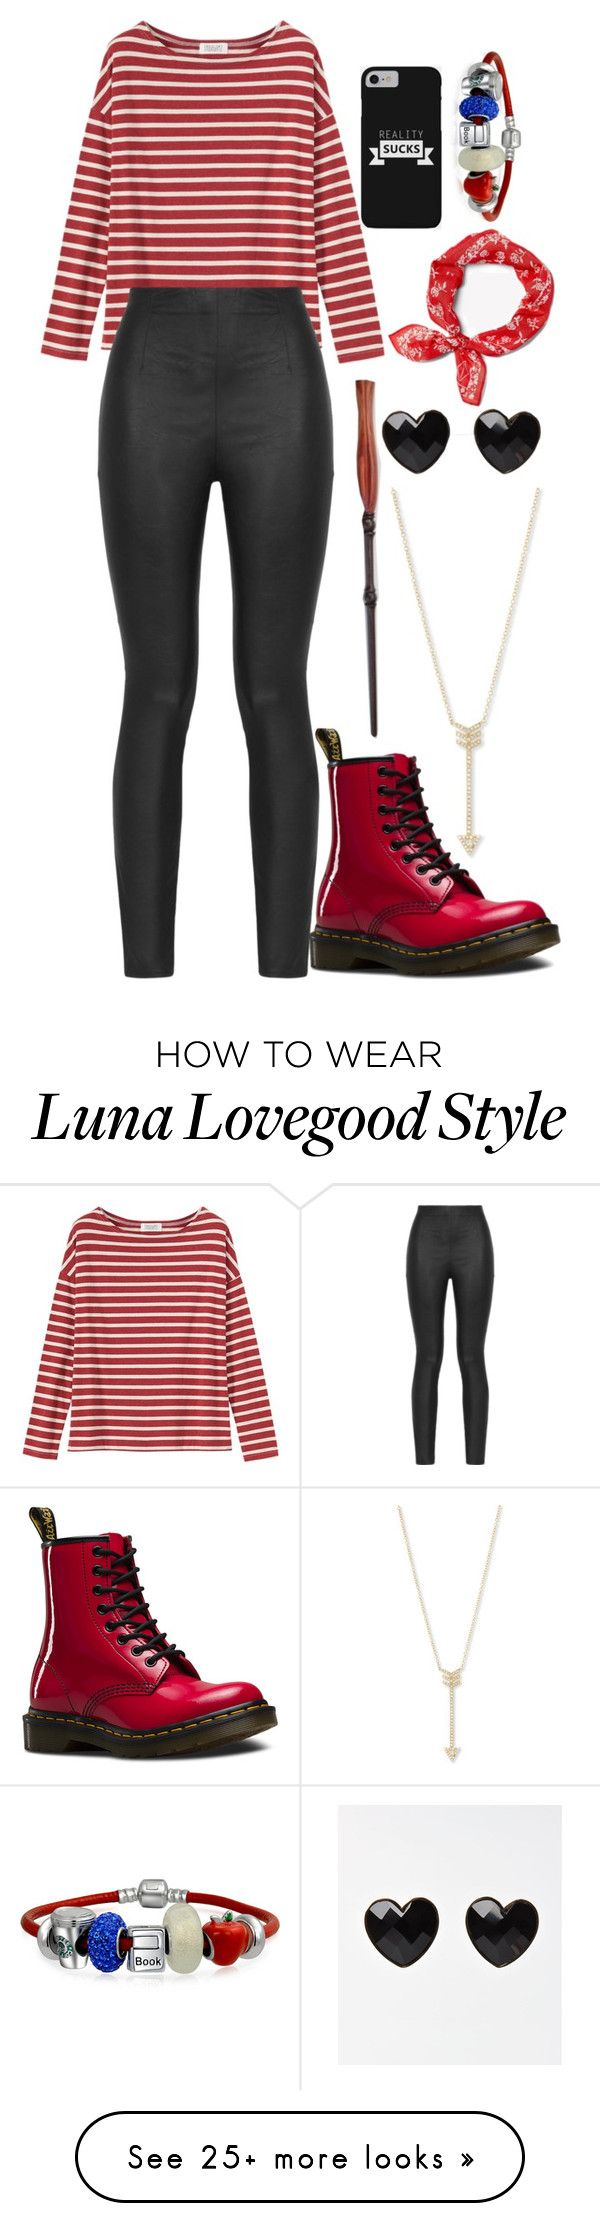 """""""Untitled #1094"""" by twisted-magic on Polyvore featuring Toast, Armani Jeans, EF Collection, Dr. Martens, Bling Jewelry and rag & bone"""